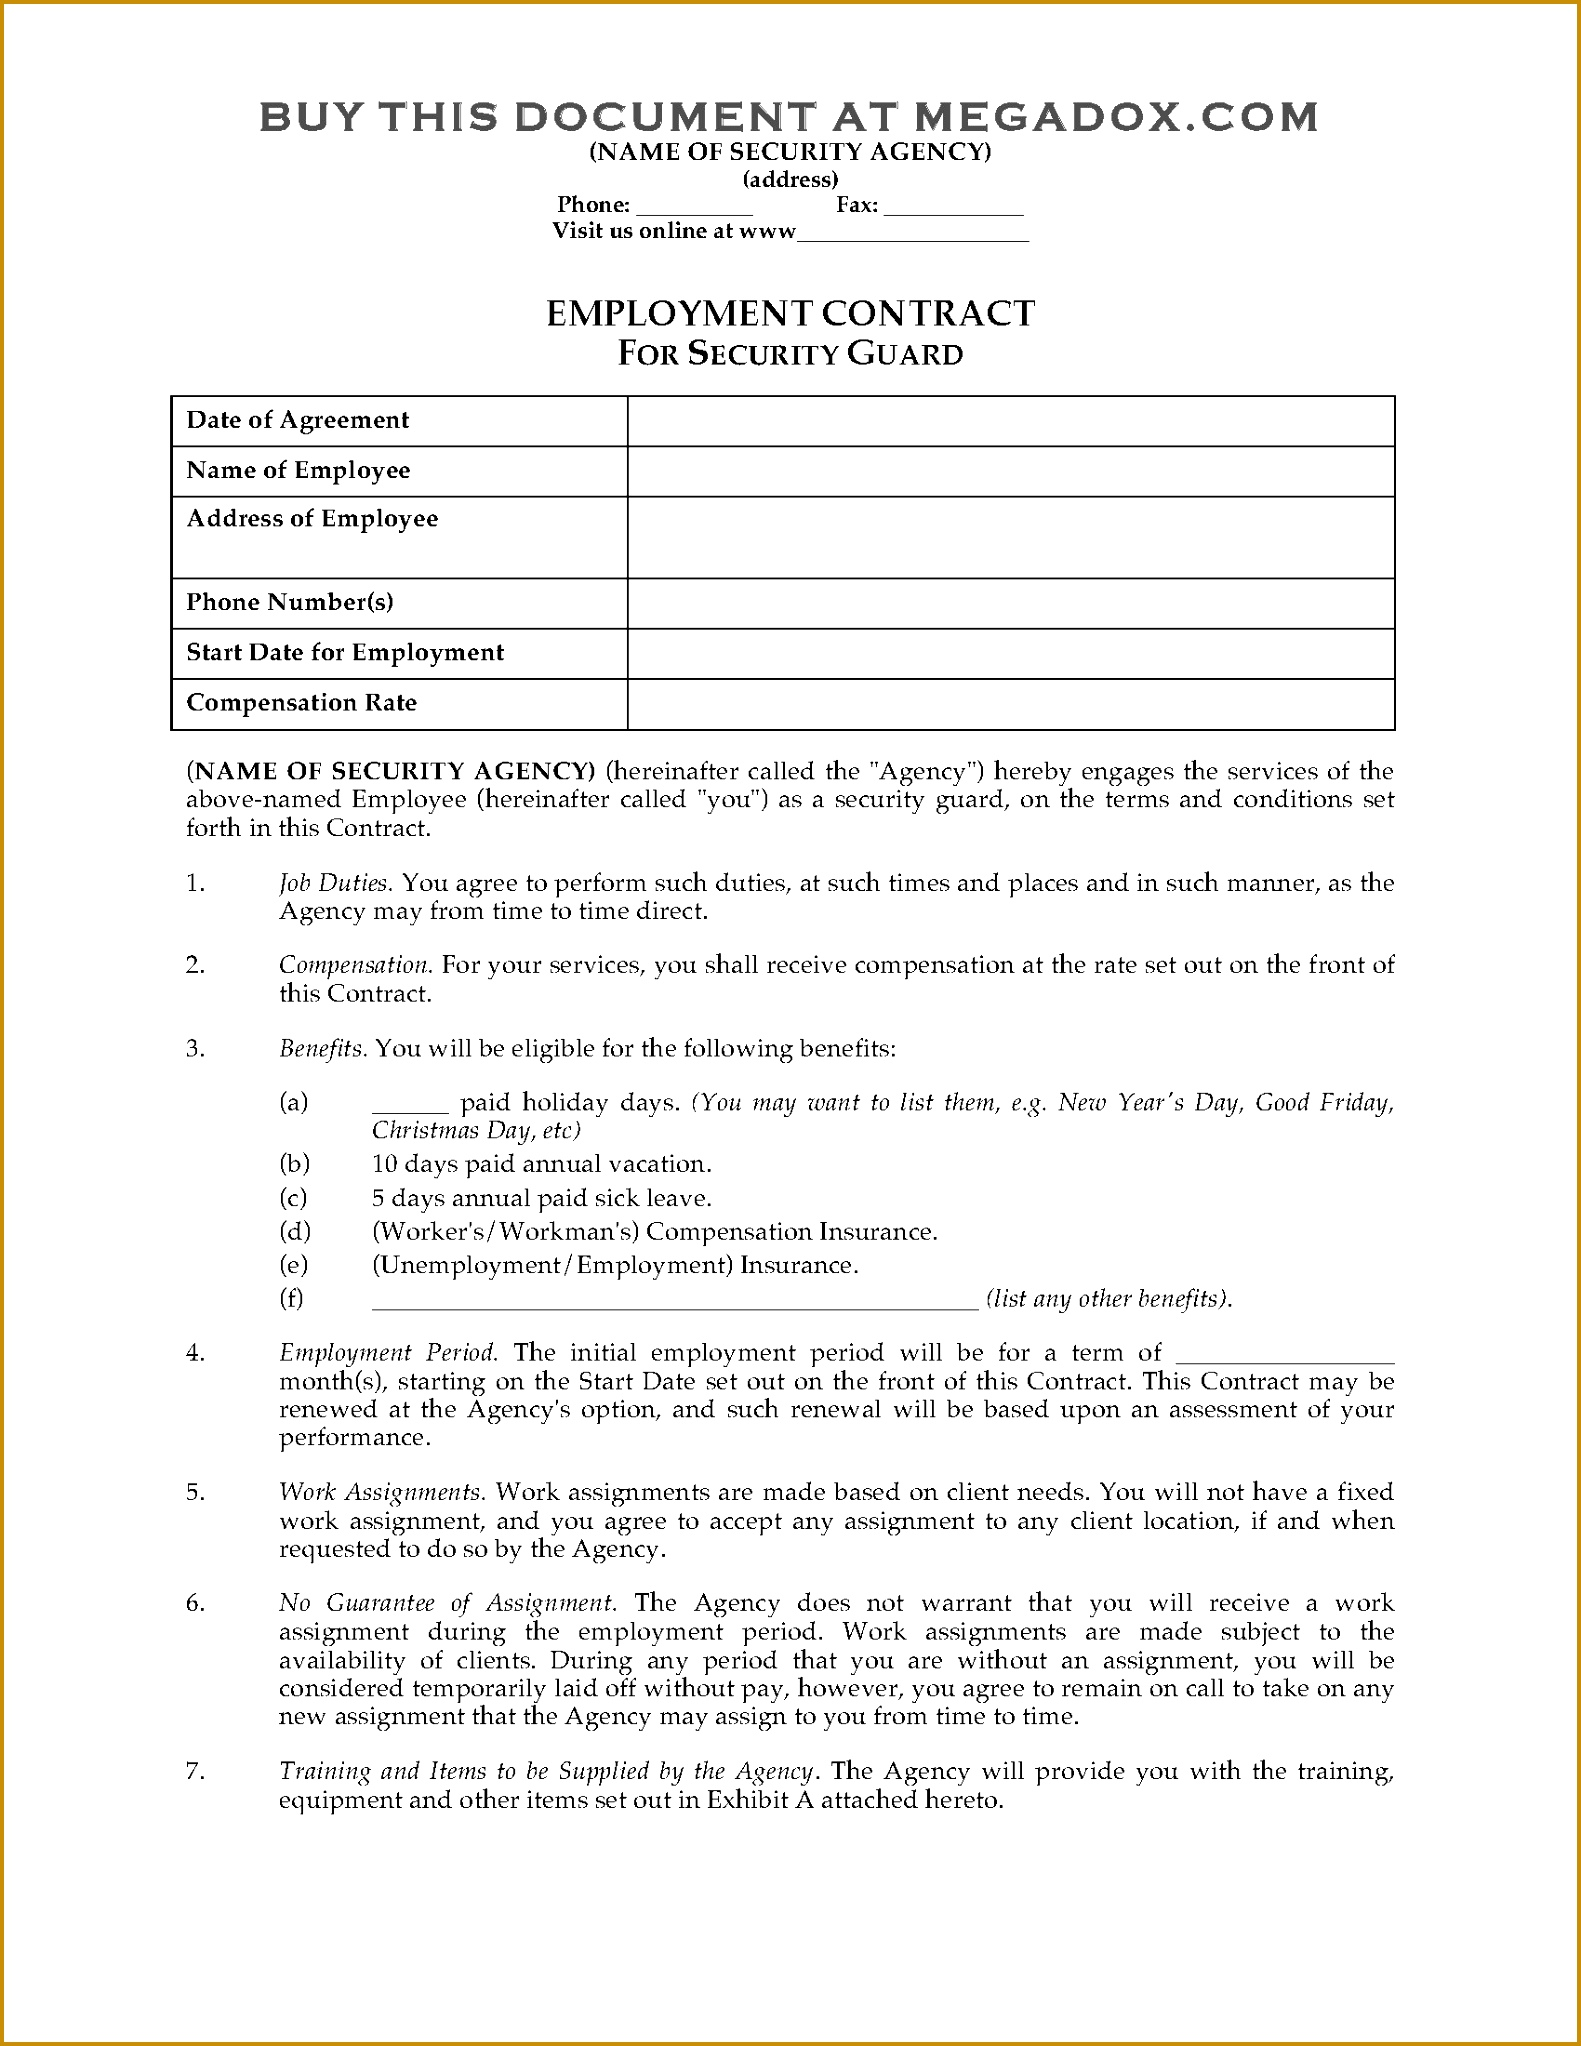 Picture of Security Guard Employment Contract 15812046